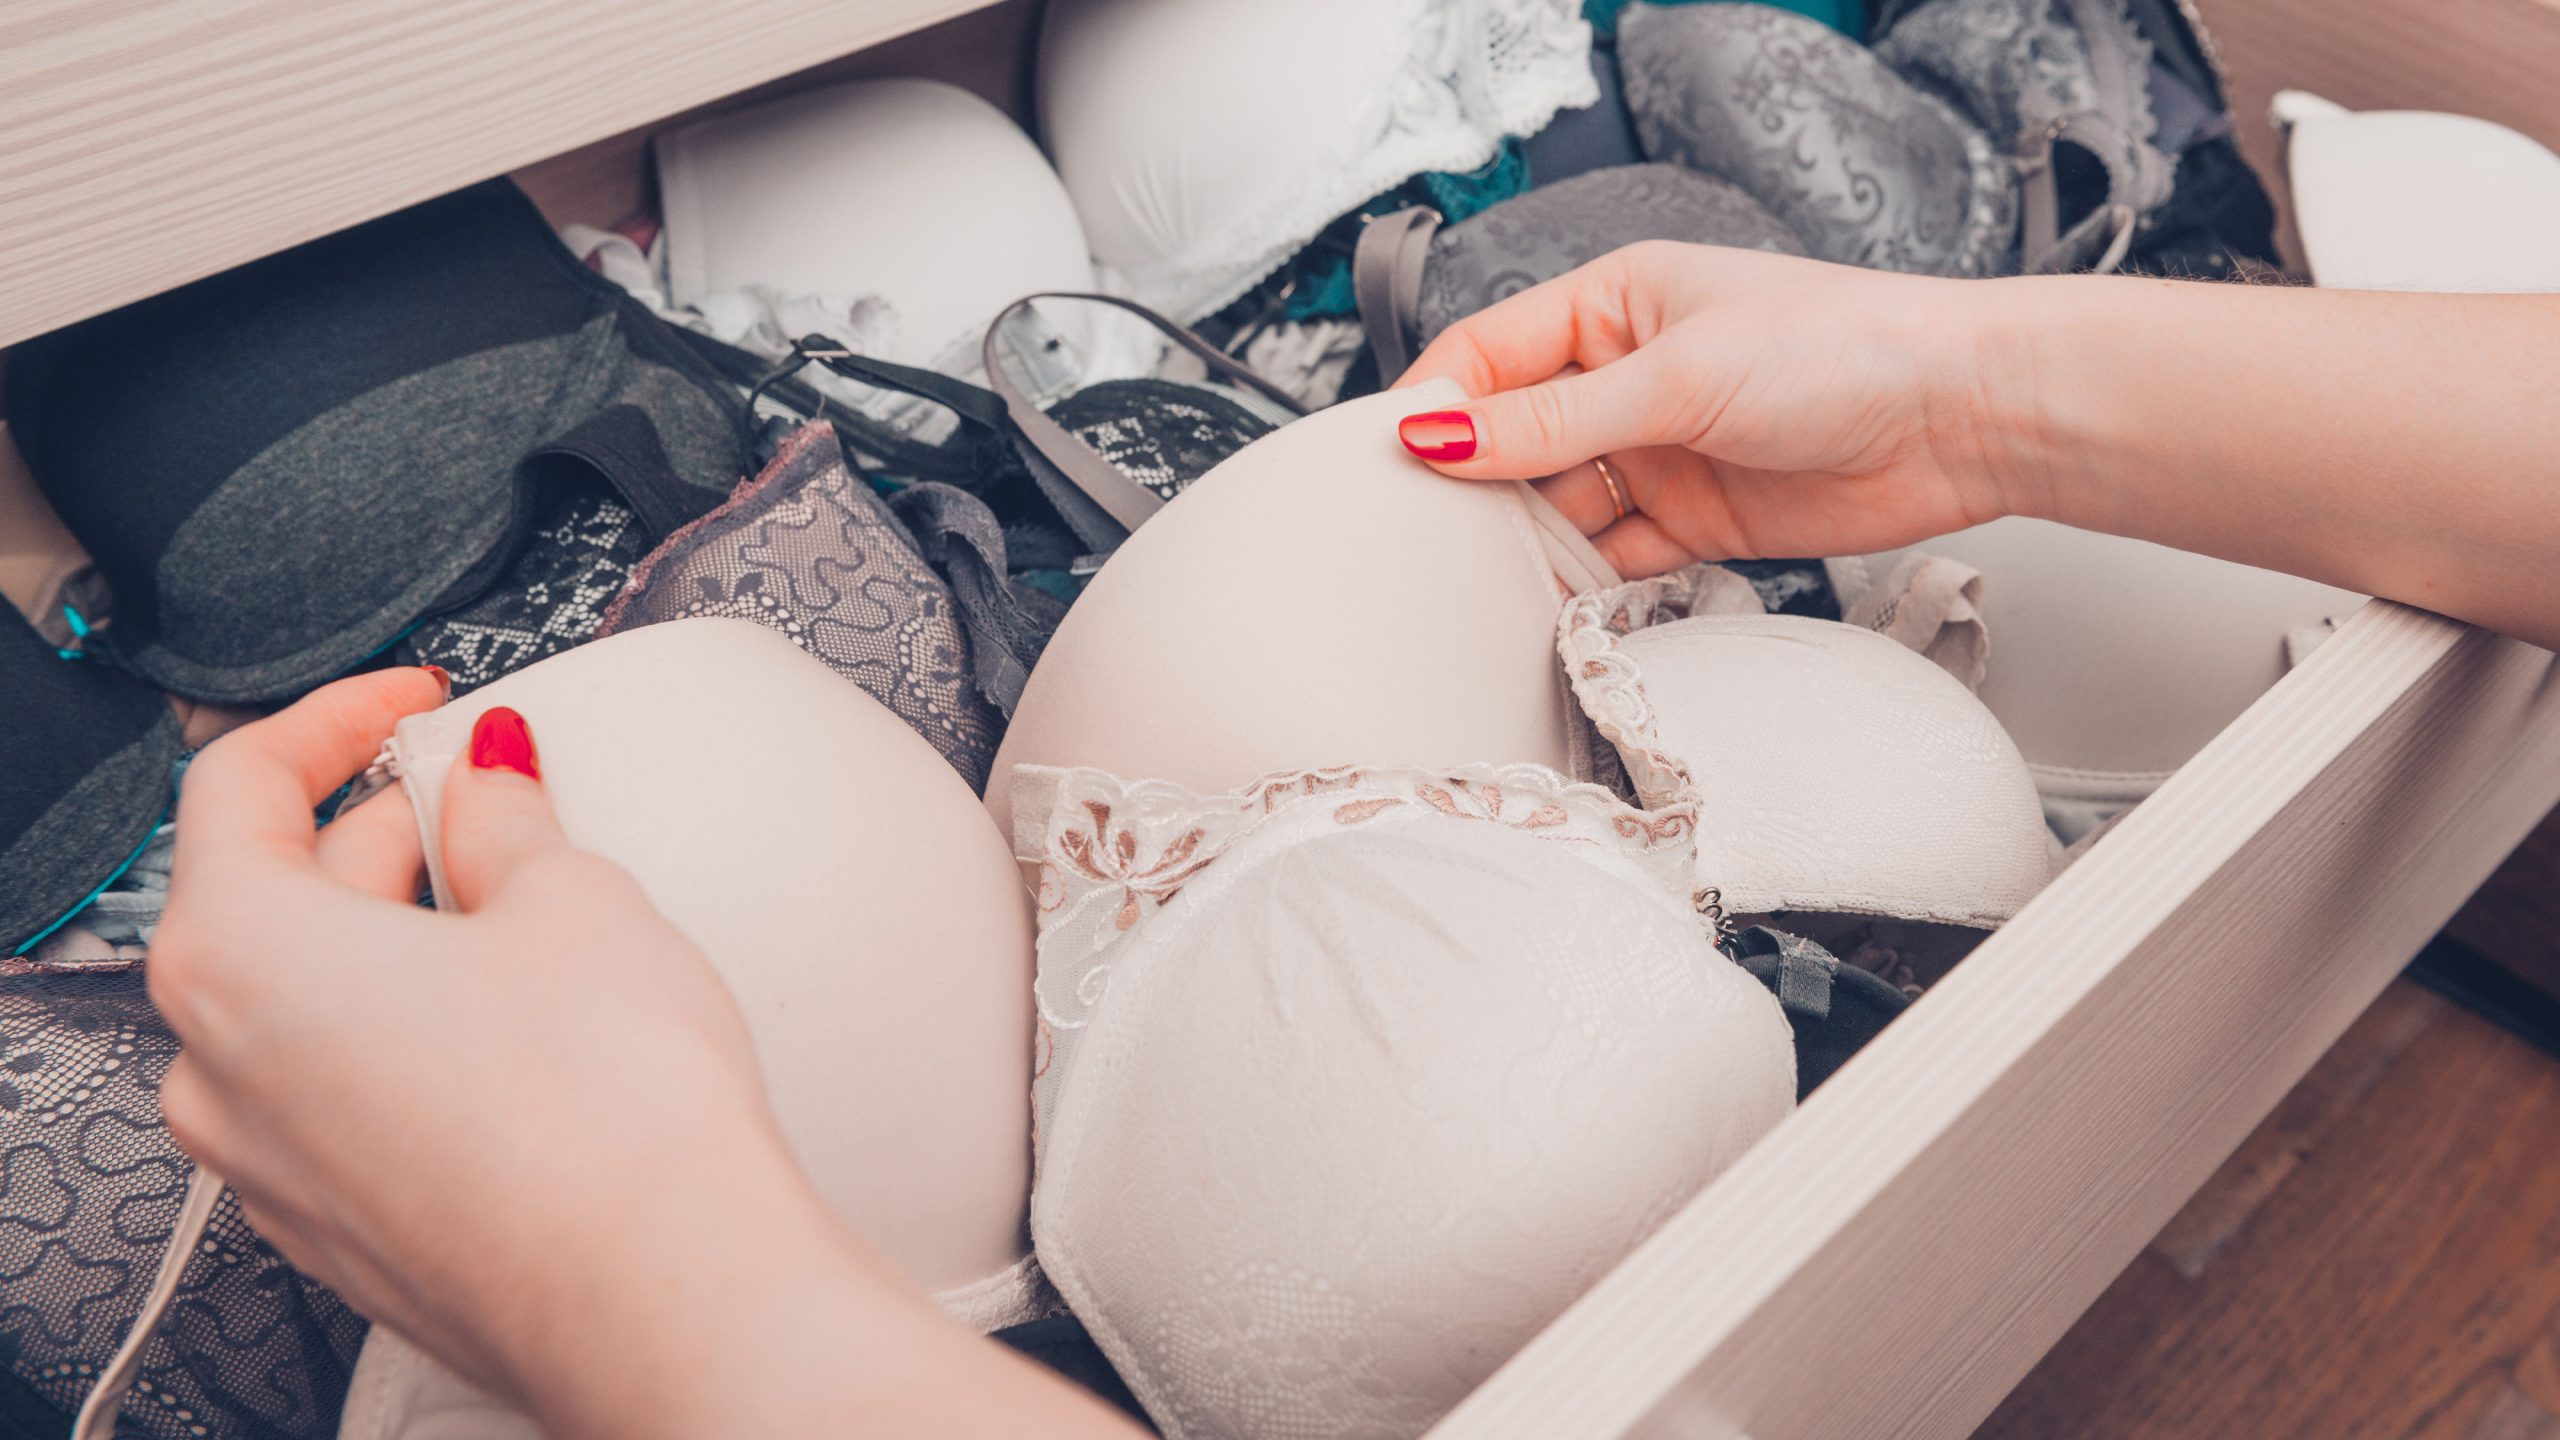 You can get Victoria's Secret bras from $10 right now